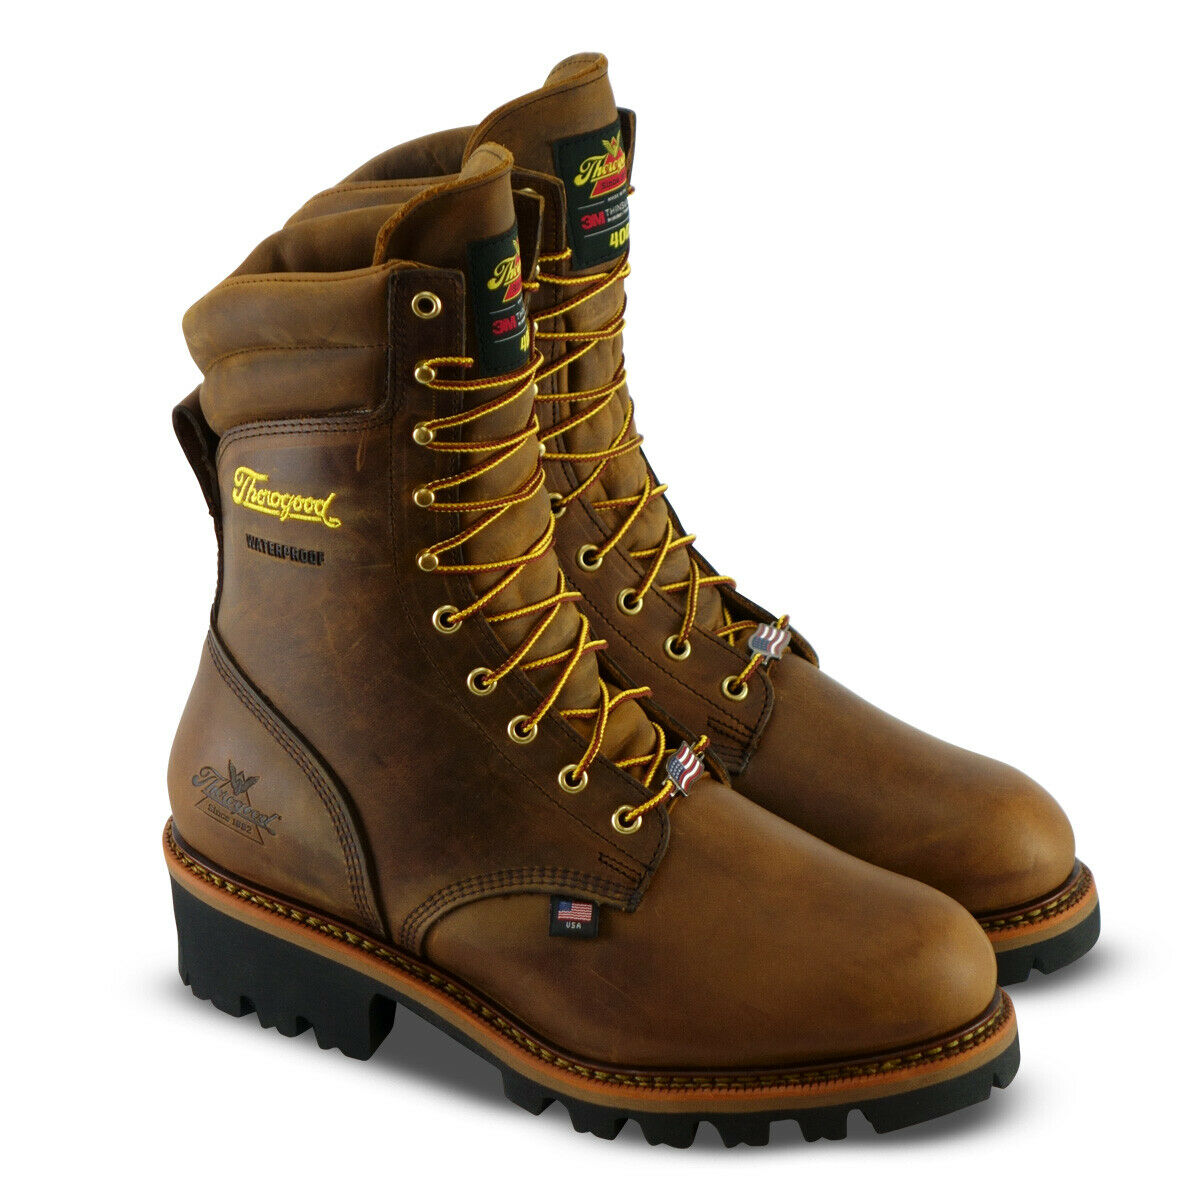 Homme Thorgood 9  Imperméable 400 g Steel Toe Lace Up Logger Travail Bottes 804-3554